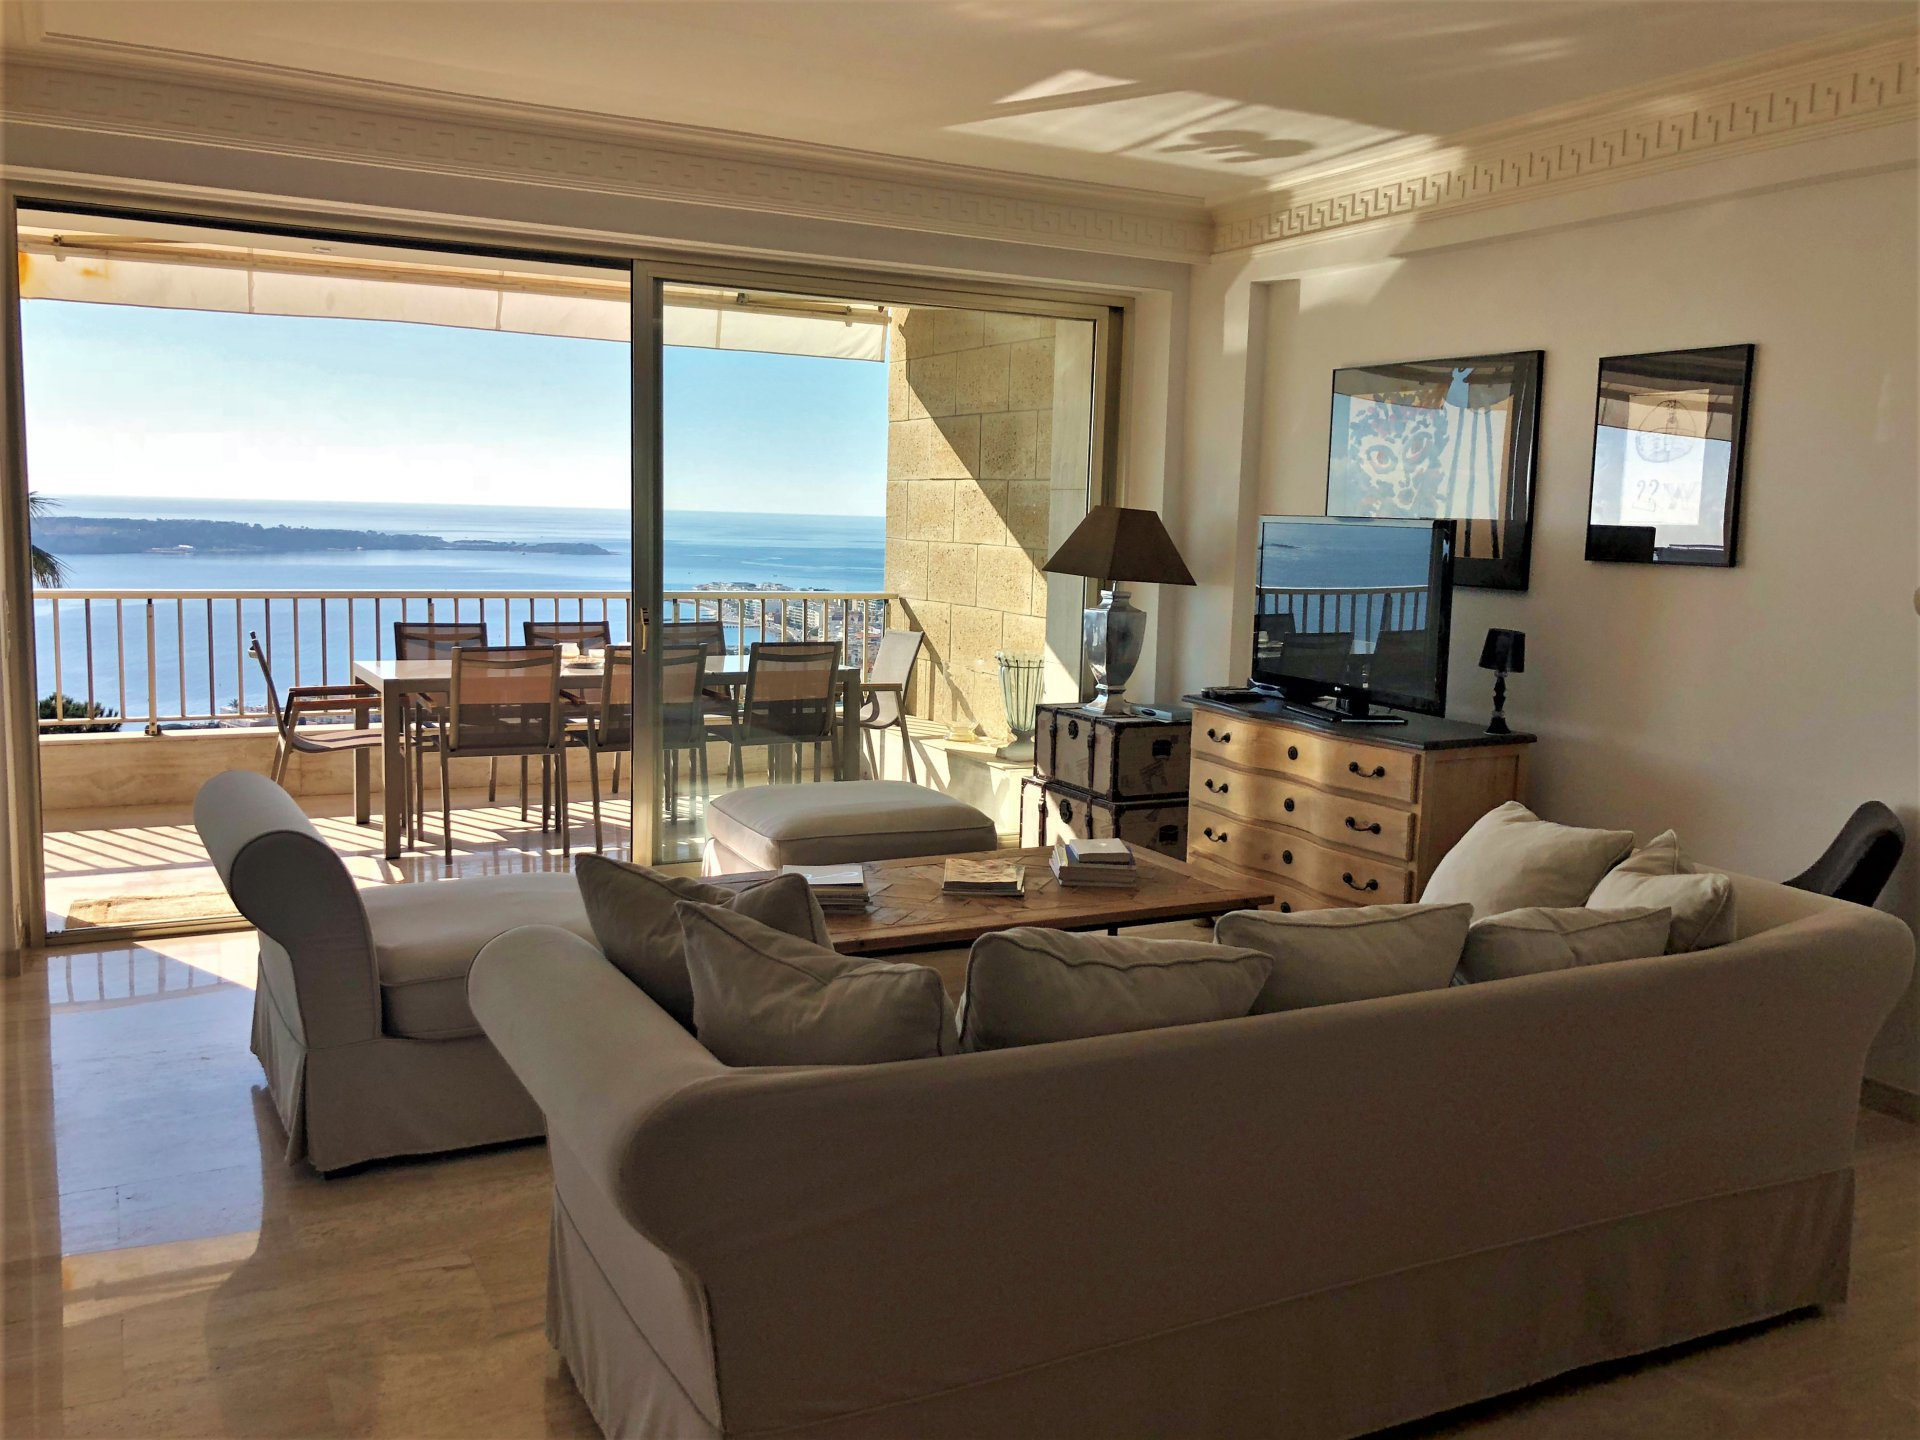 VENTE CANNES CALIFORNIE - APPARTEMENT 3P 118M² + 22M² TERRASSE VUE MER PANORAMIQUE